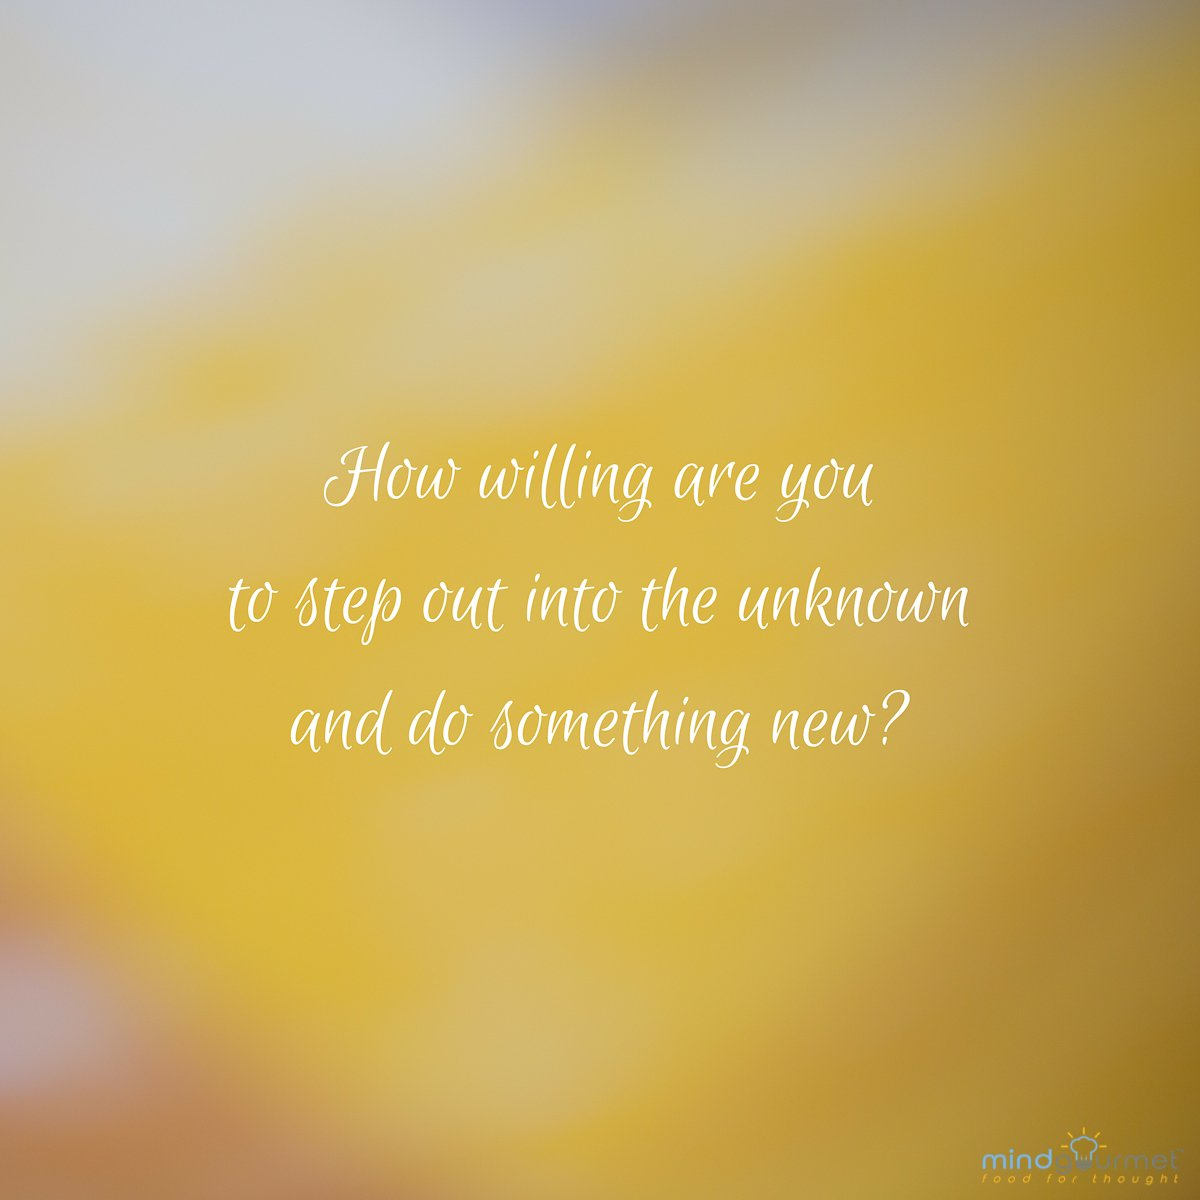 How willing are you to step out into the unknown and do something new? #comfortzone #comfortzoneweek #catchoftheday<br>http://pic.twitter.com/lQ2lL3oiHW